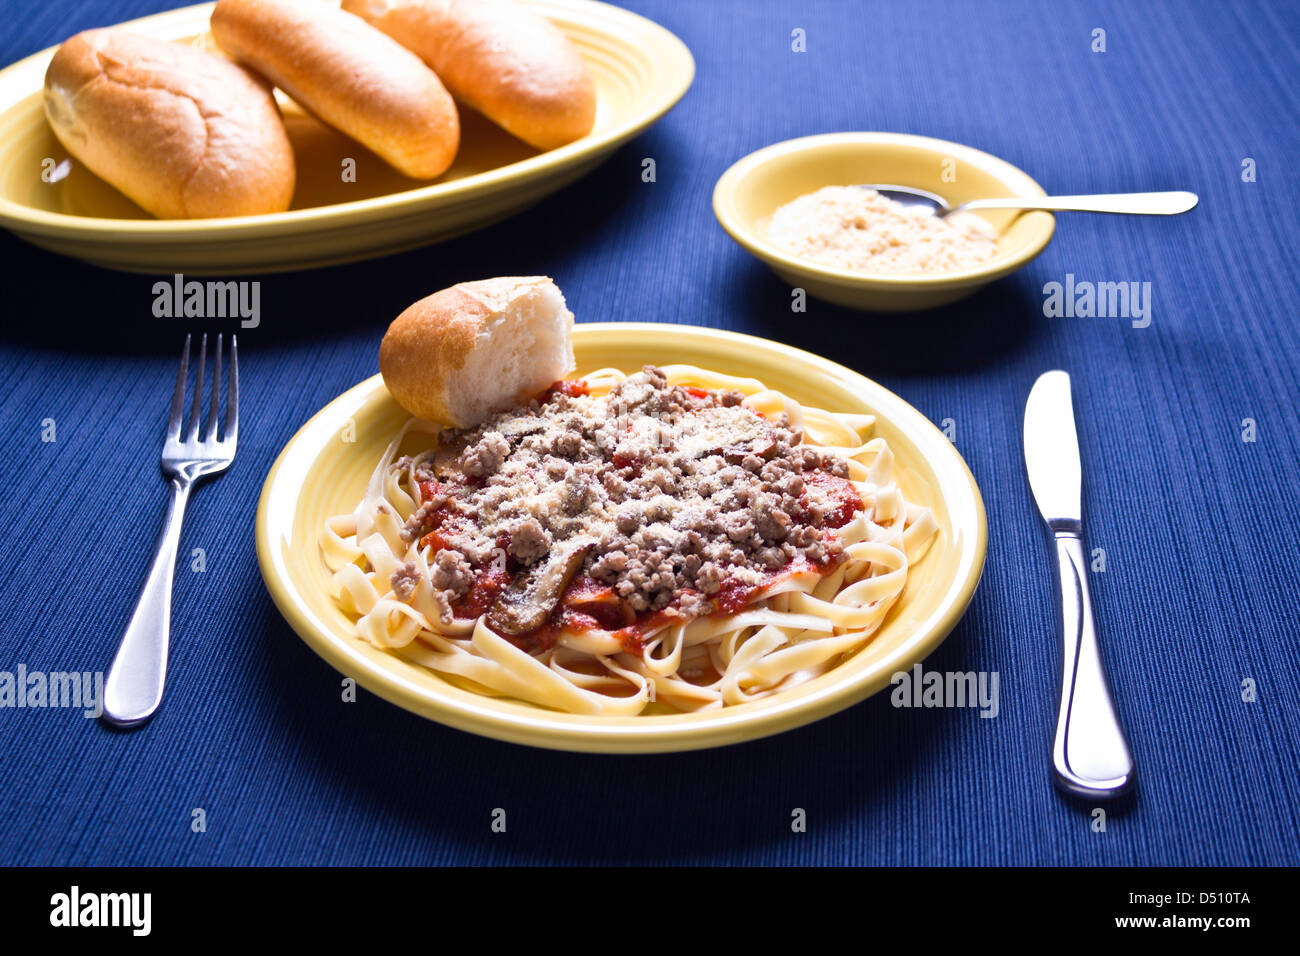 Plate of pasta and gravy with parmesan cheese and serving plate with baguettes on it. & Plate of pasta and gravy with parmesan cheese and serving plate with ...